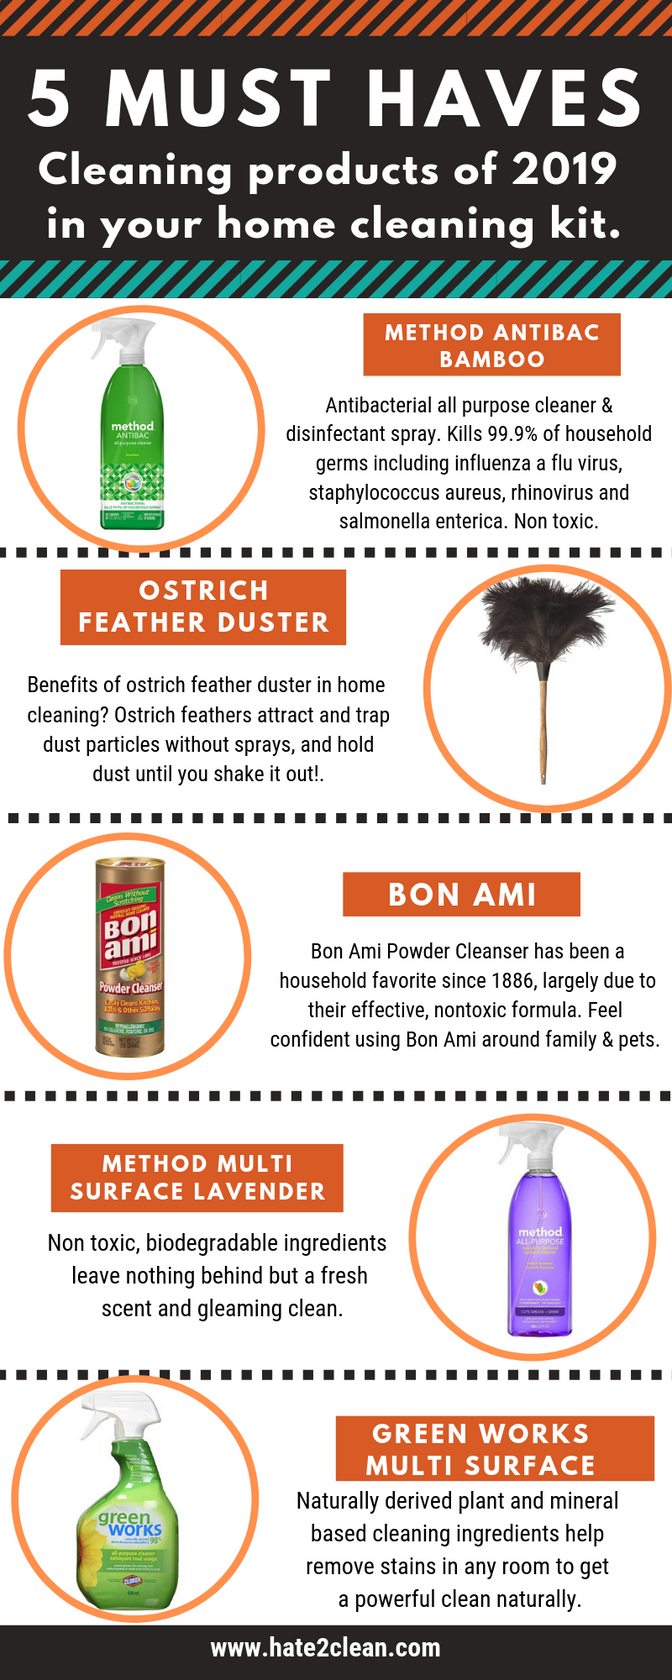 5 MUST HAVES CLEANING PRODUCTS OF 2019 IN YOUR HOME CLEANING KIT